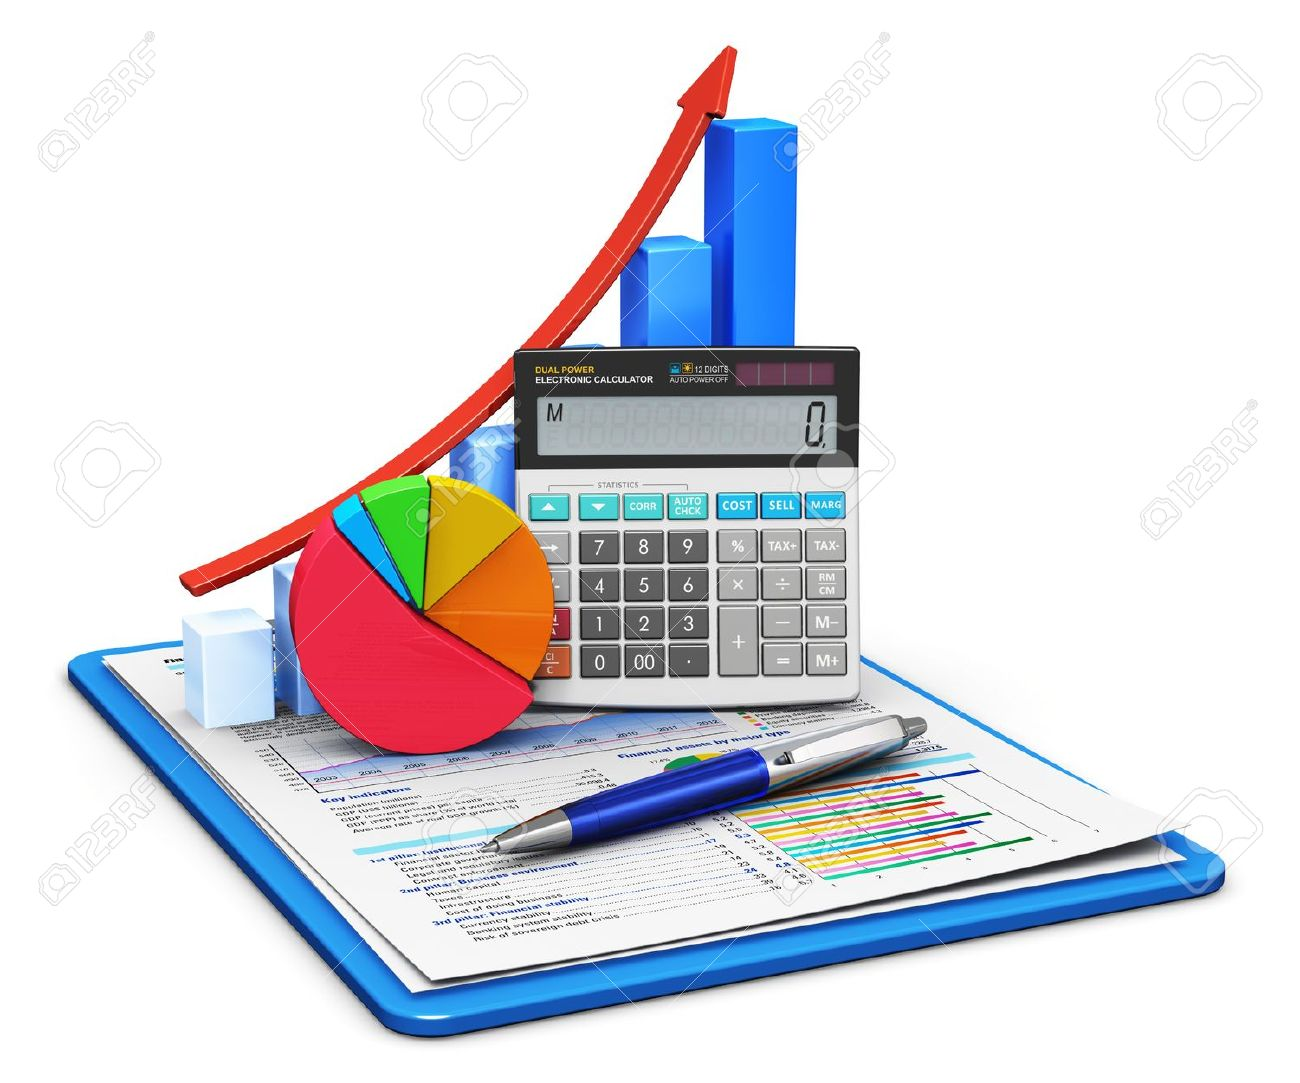 Business finance tax accounting statistics and analytic research business finance tax accounting statistics and analytic research concept office electronic calculator ccuart Gallery